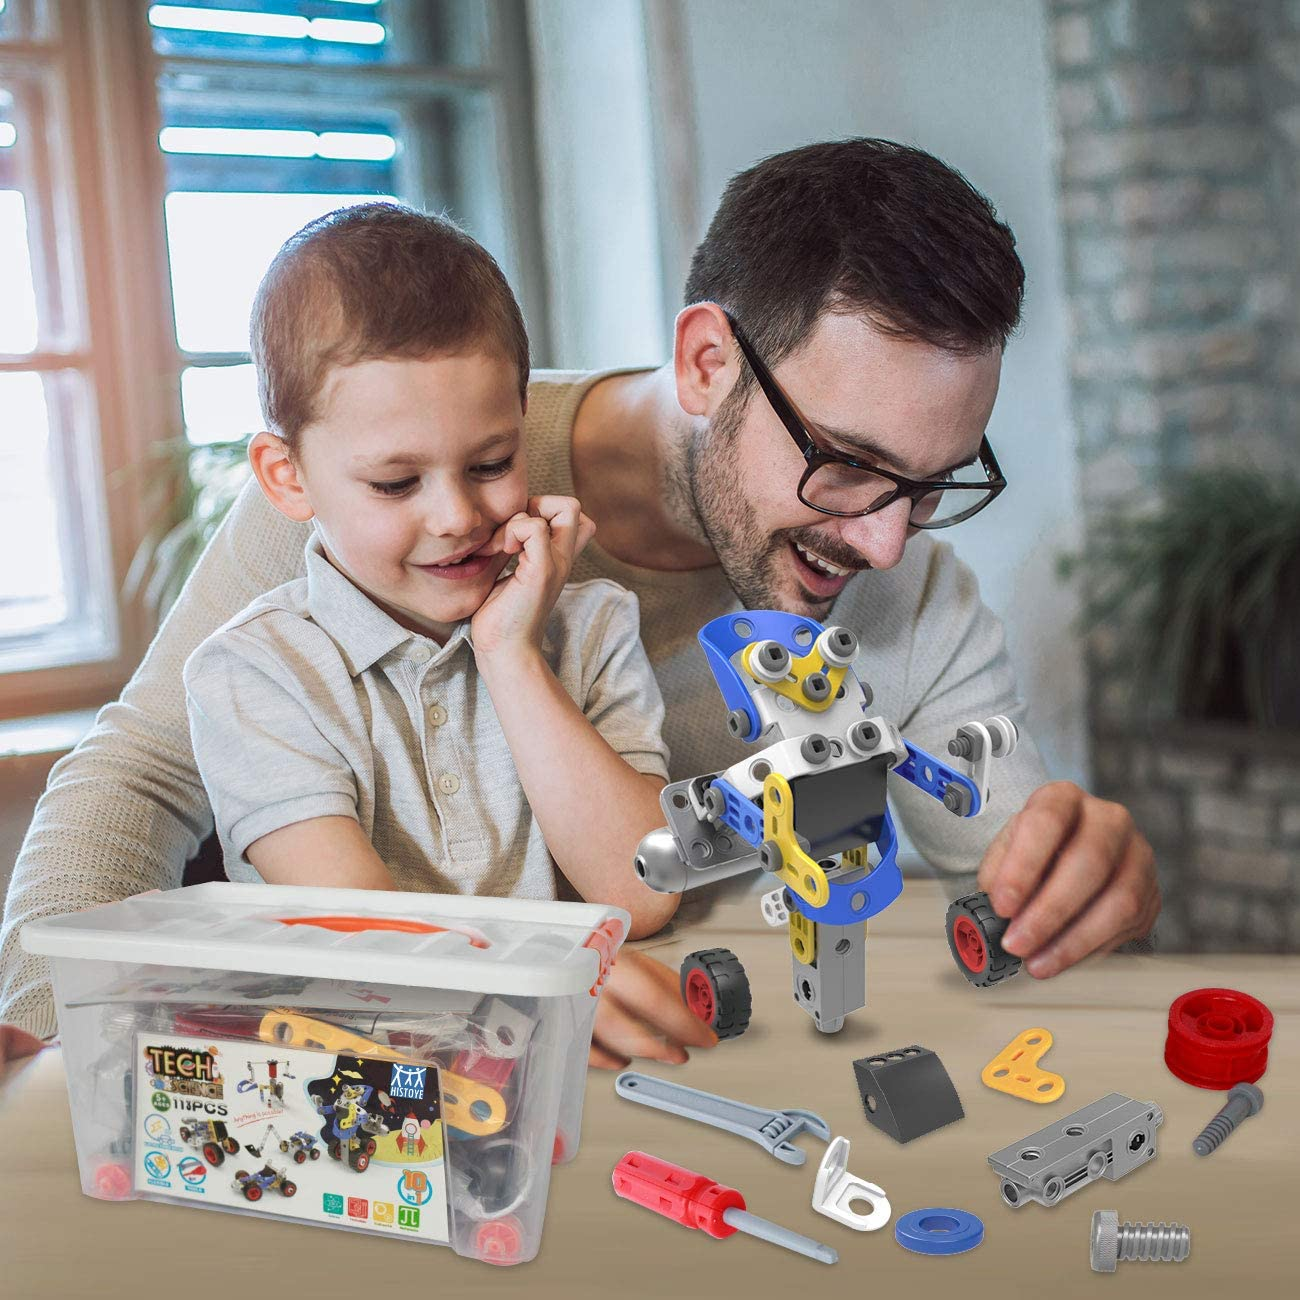 HISTOYE STEM Toys Kits 10 in 1 Educational Engineering ...